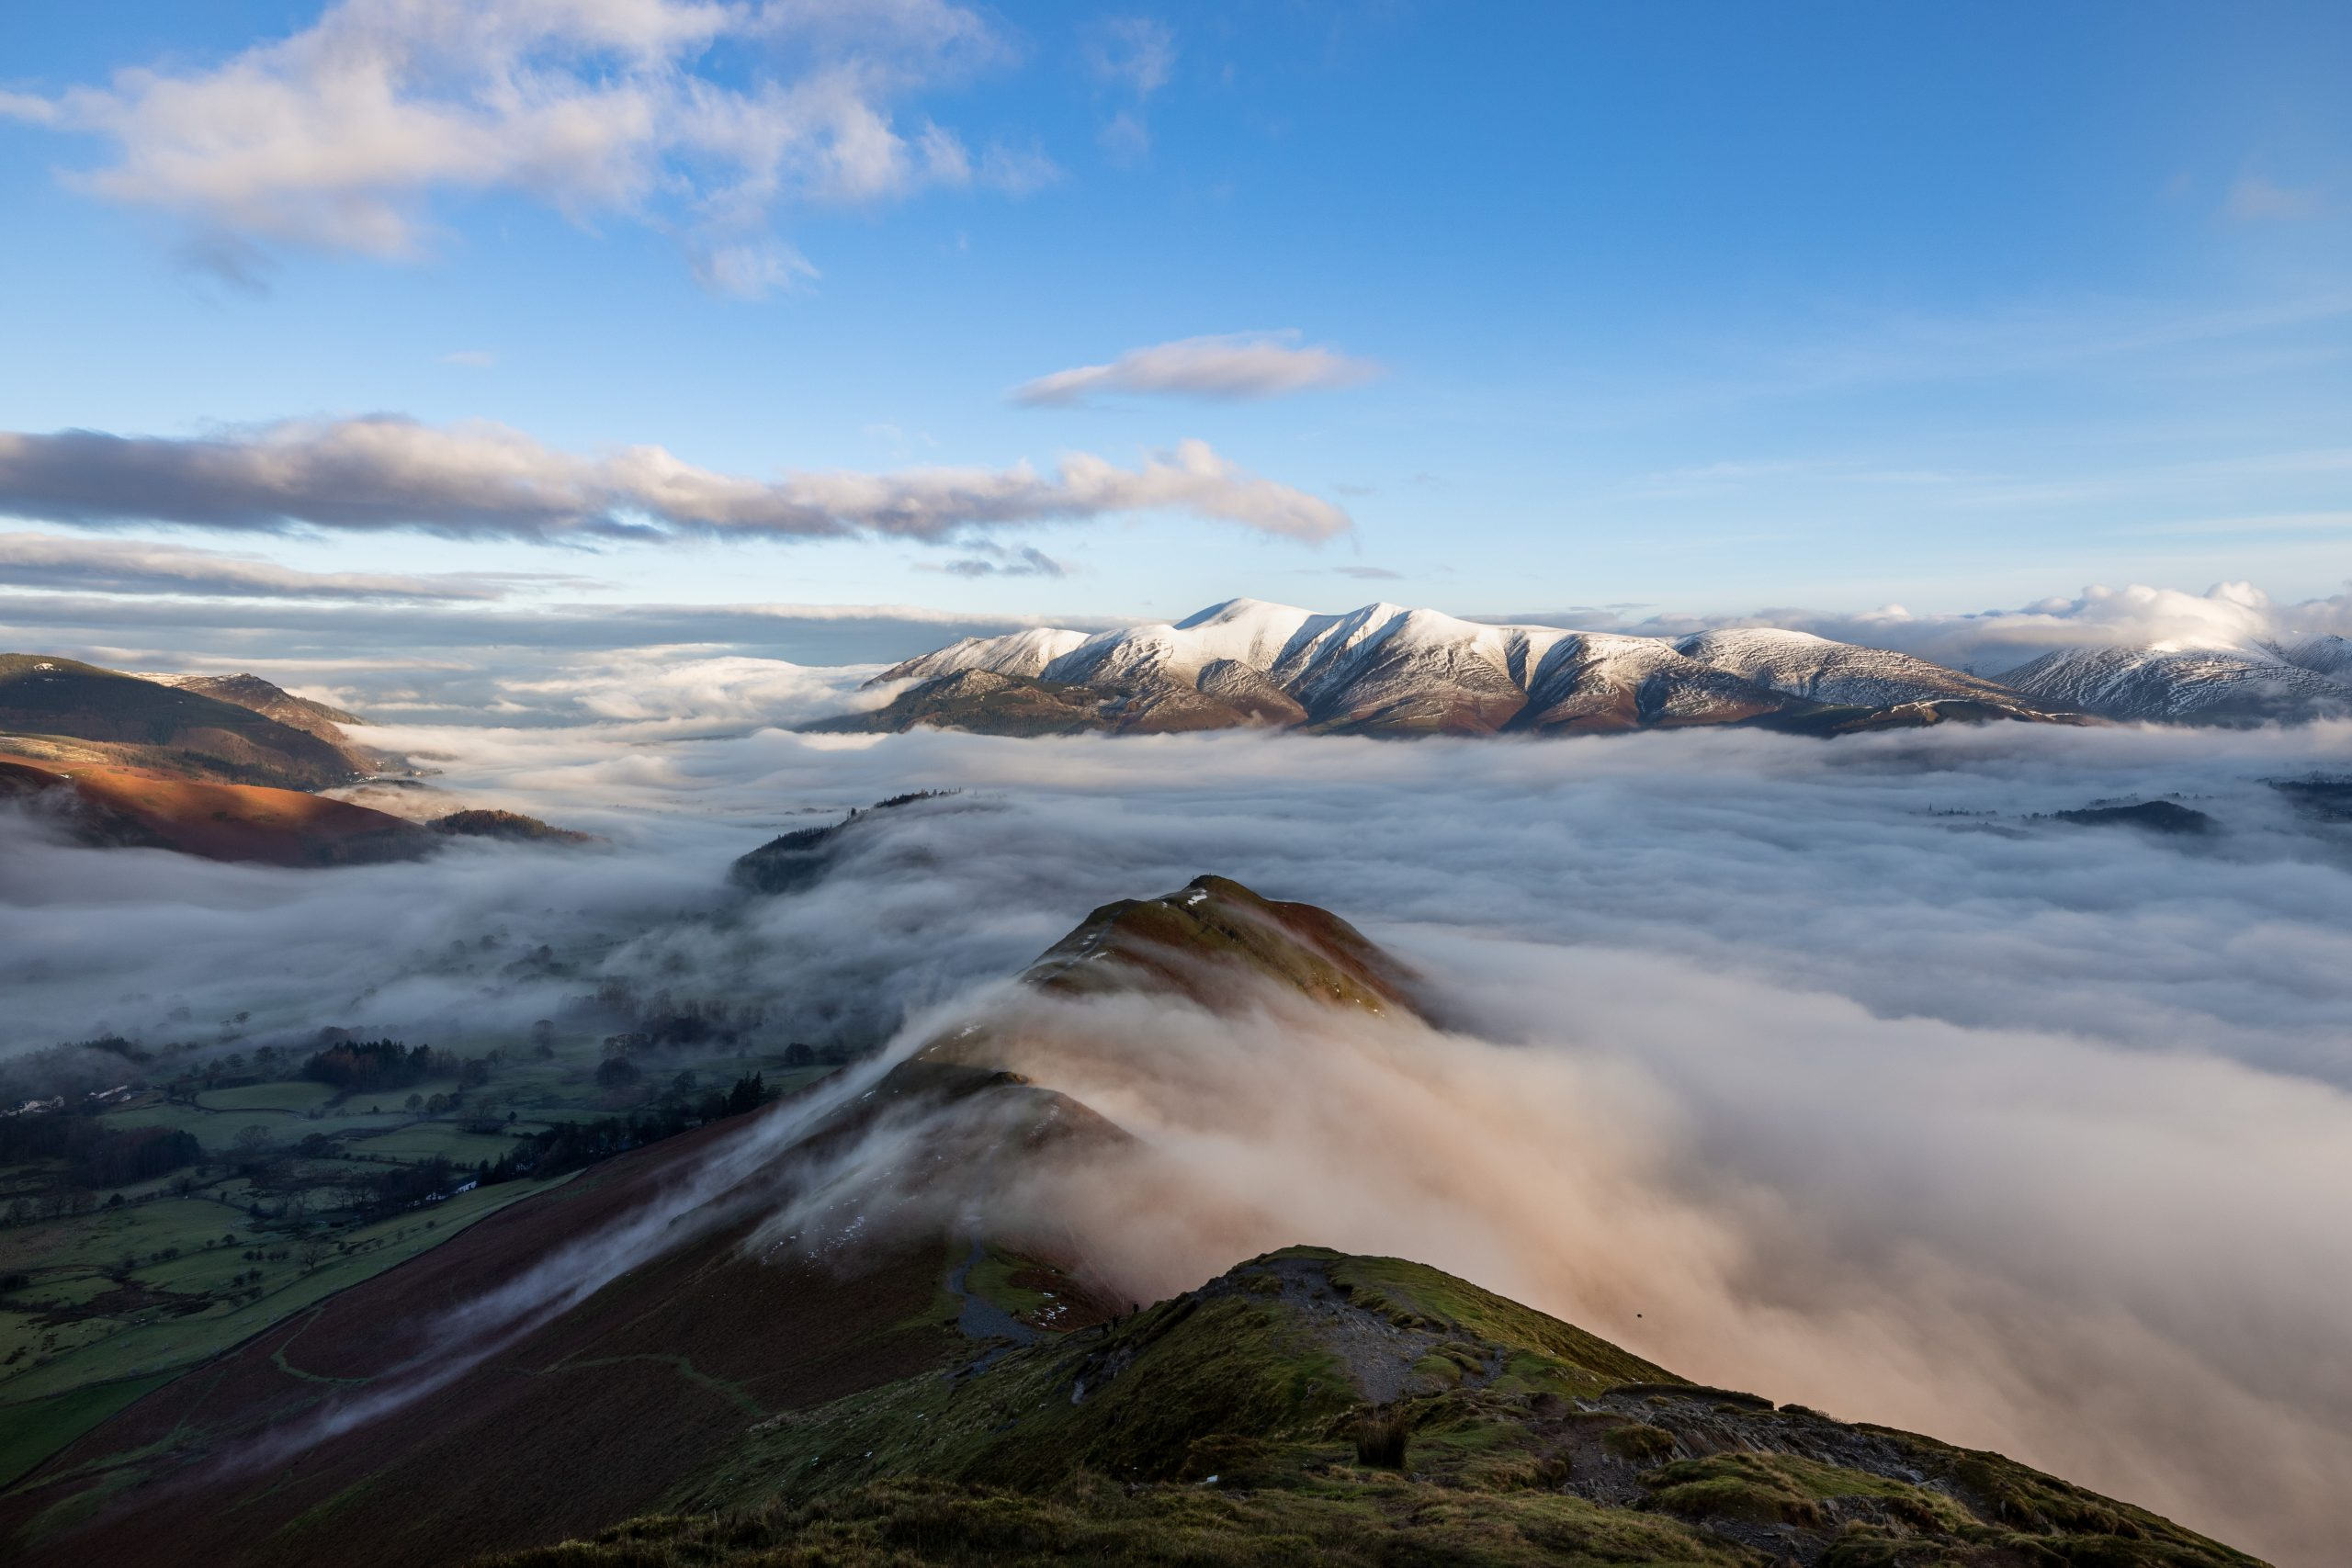 Skiddaw viewed from Catbells looking over a sea of low clouds - a typical view on guided winter walk or winter skill course in the Lake District